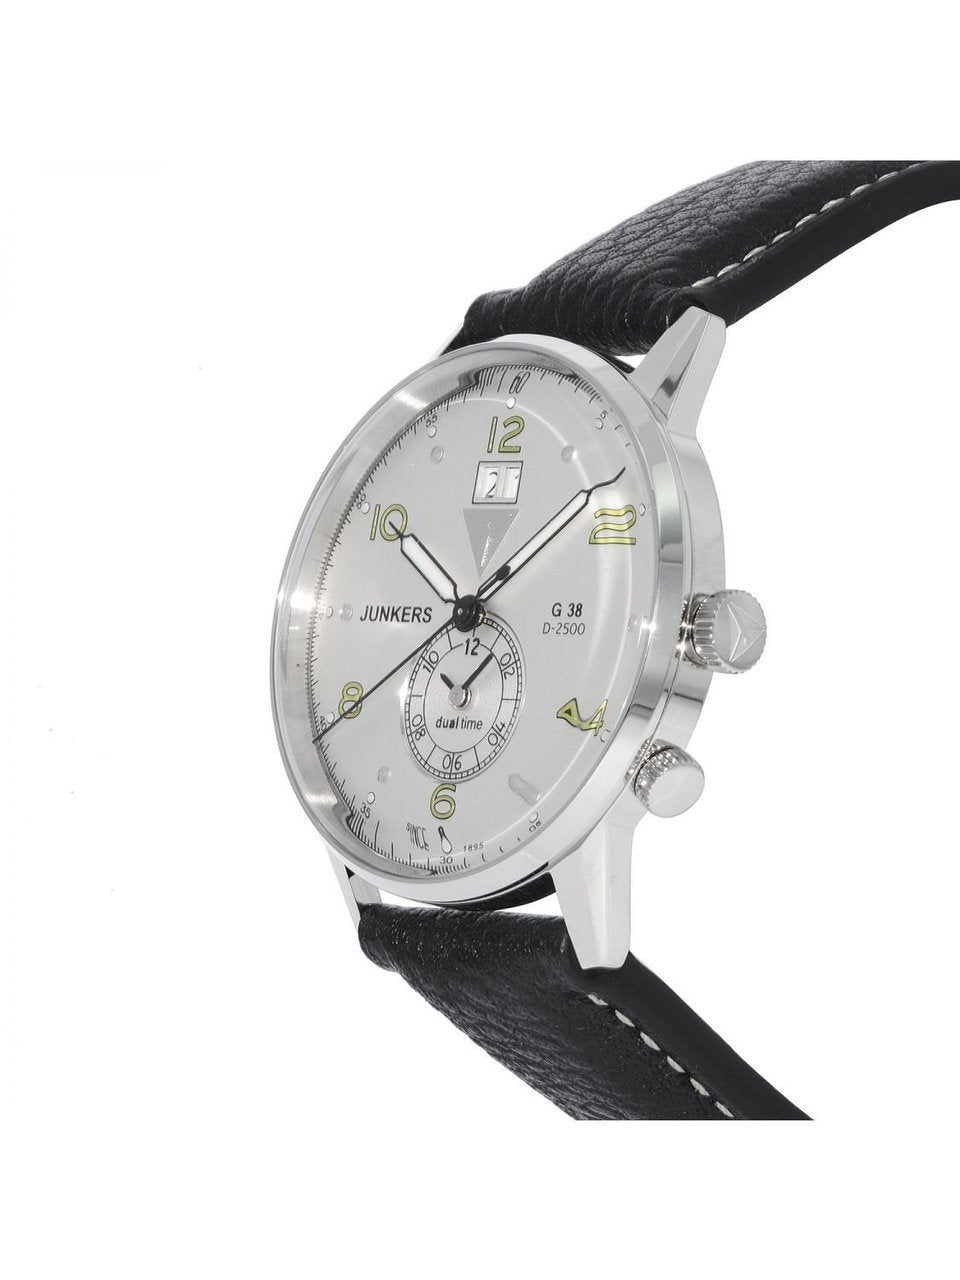 Junkers  6940-4 Dual time GMT watch G38